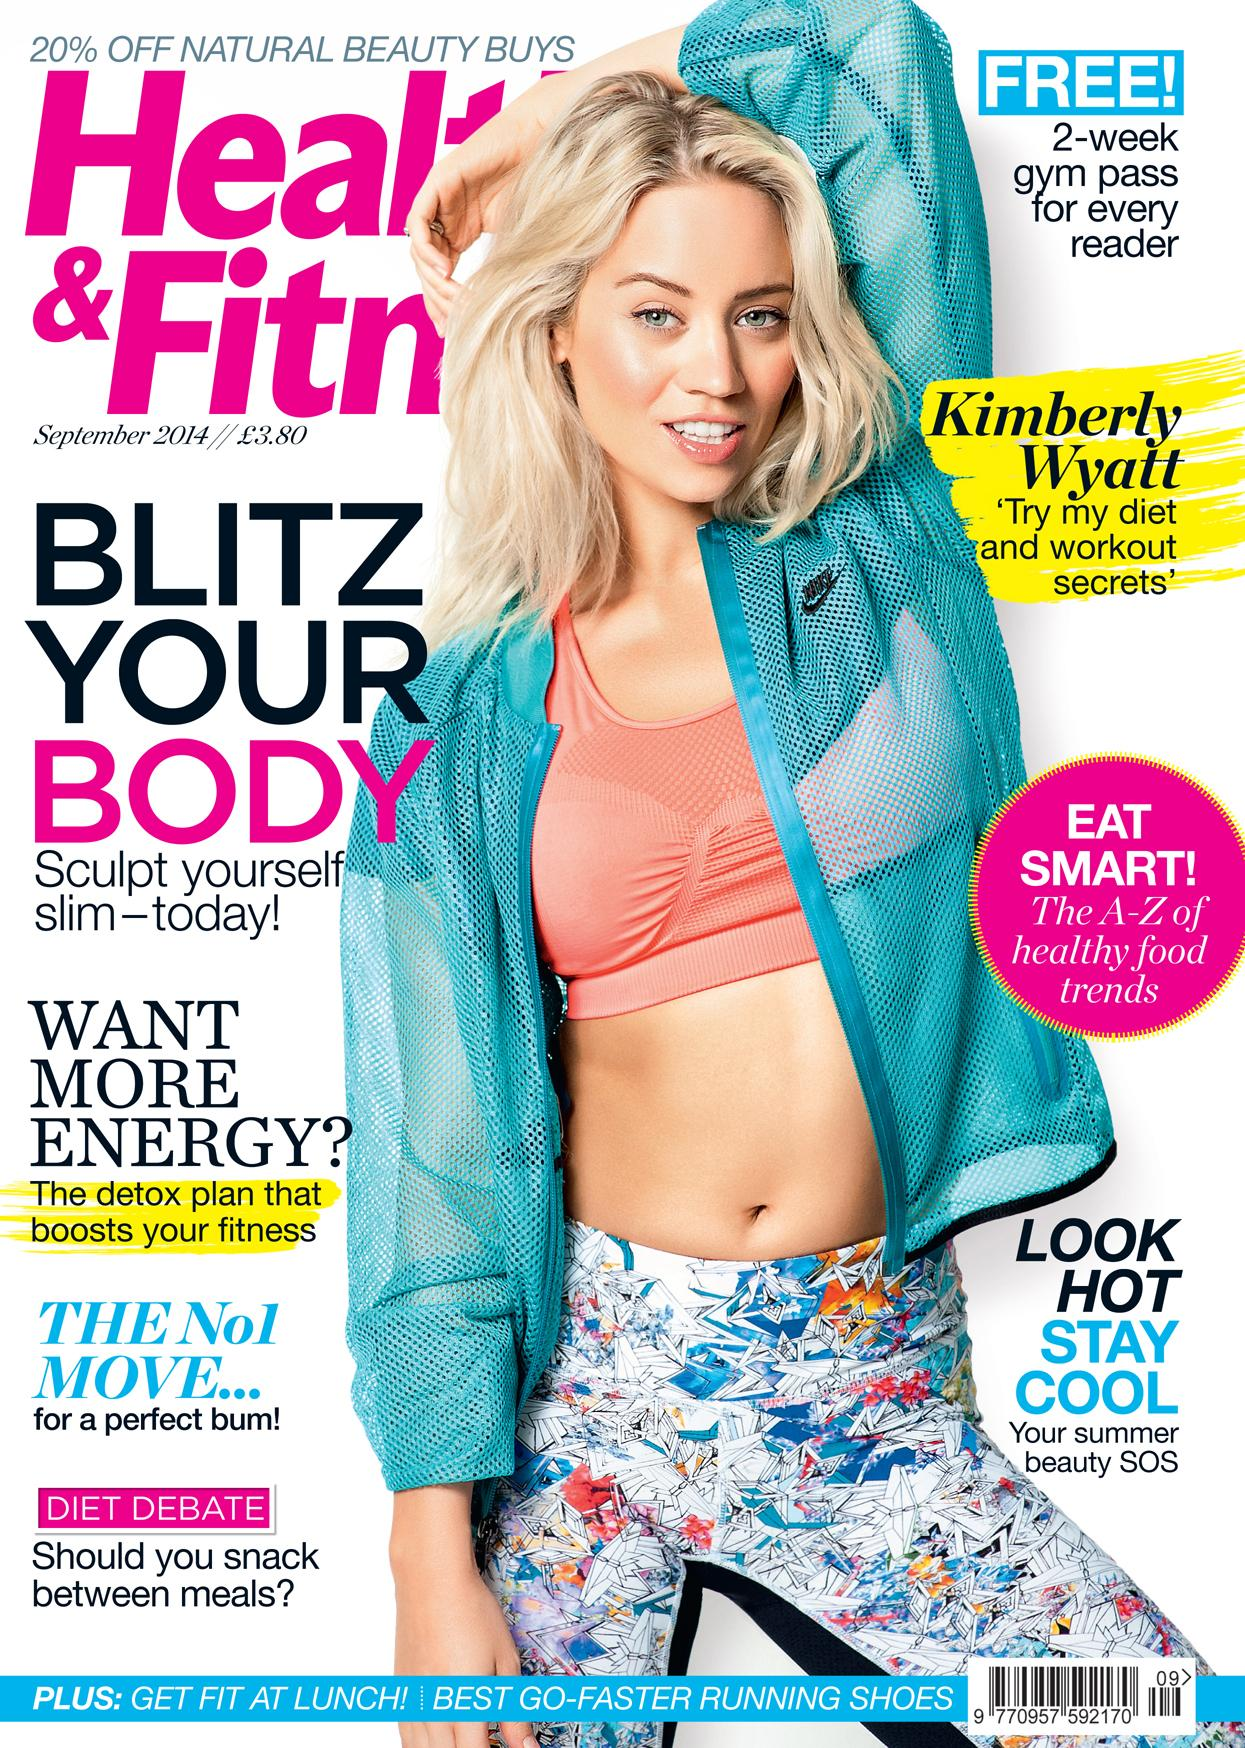 RT @HandFmagazine: Excited to announce that the gorgeous @KimberlyKWyatt is on the cover of our September issue. Out TODAY! Enjoy! http://t…